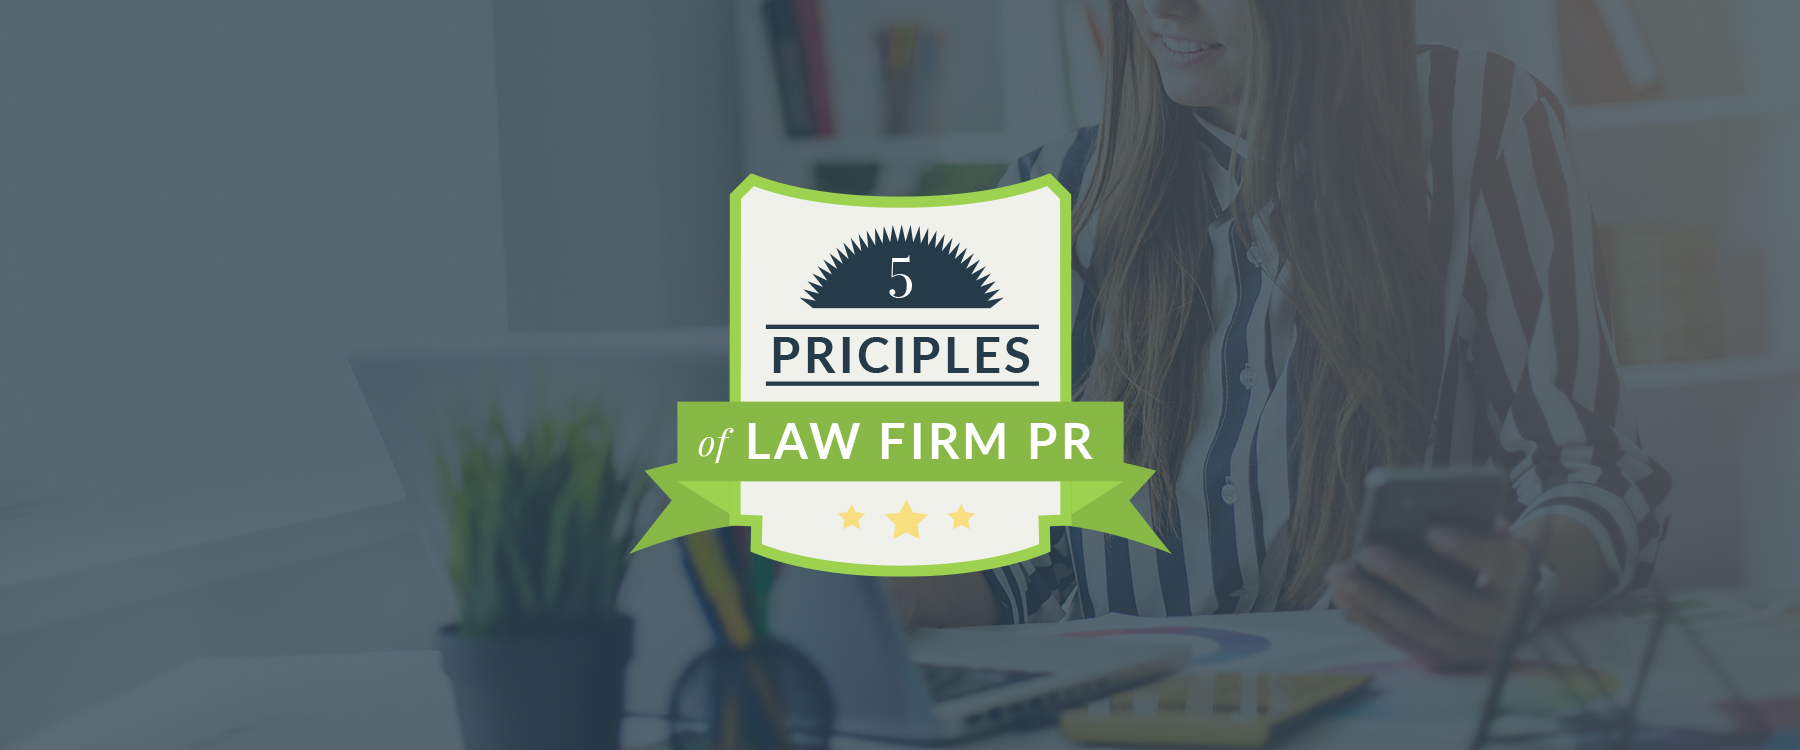 5 principles of law firm PR cover photo